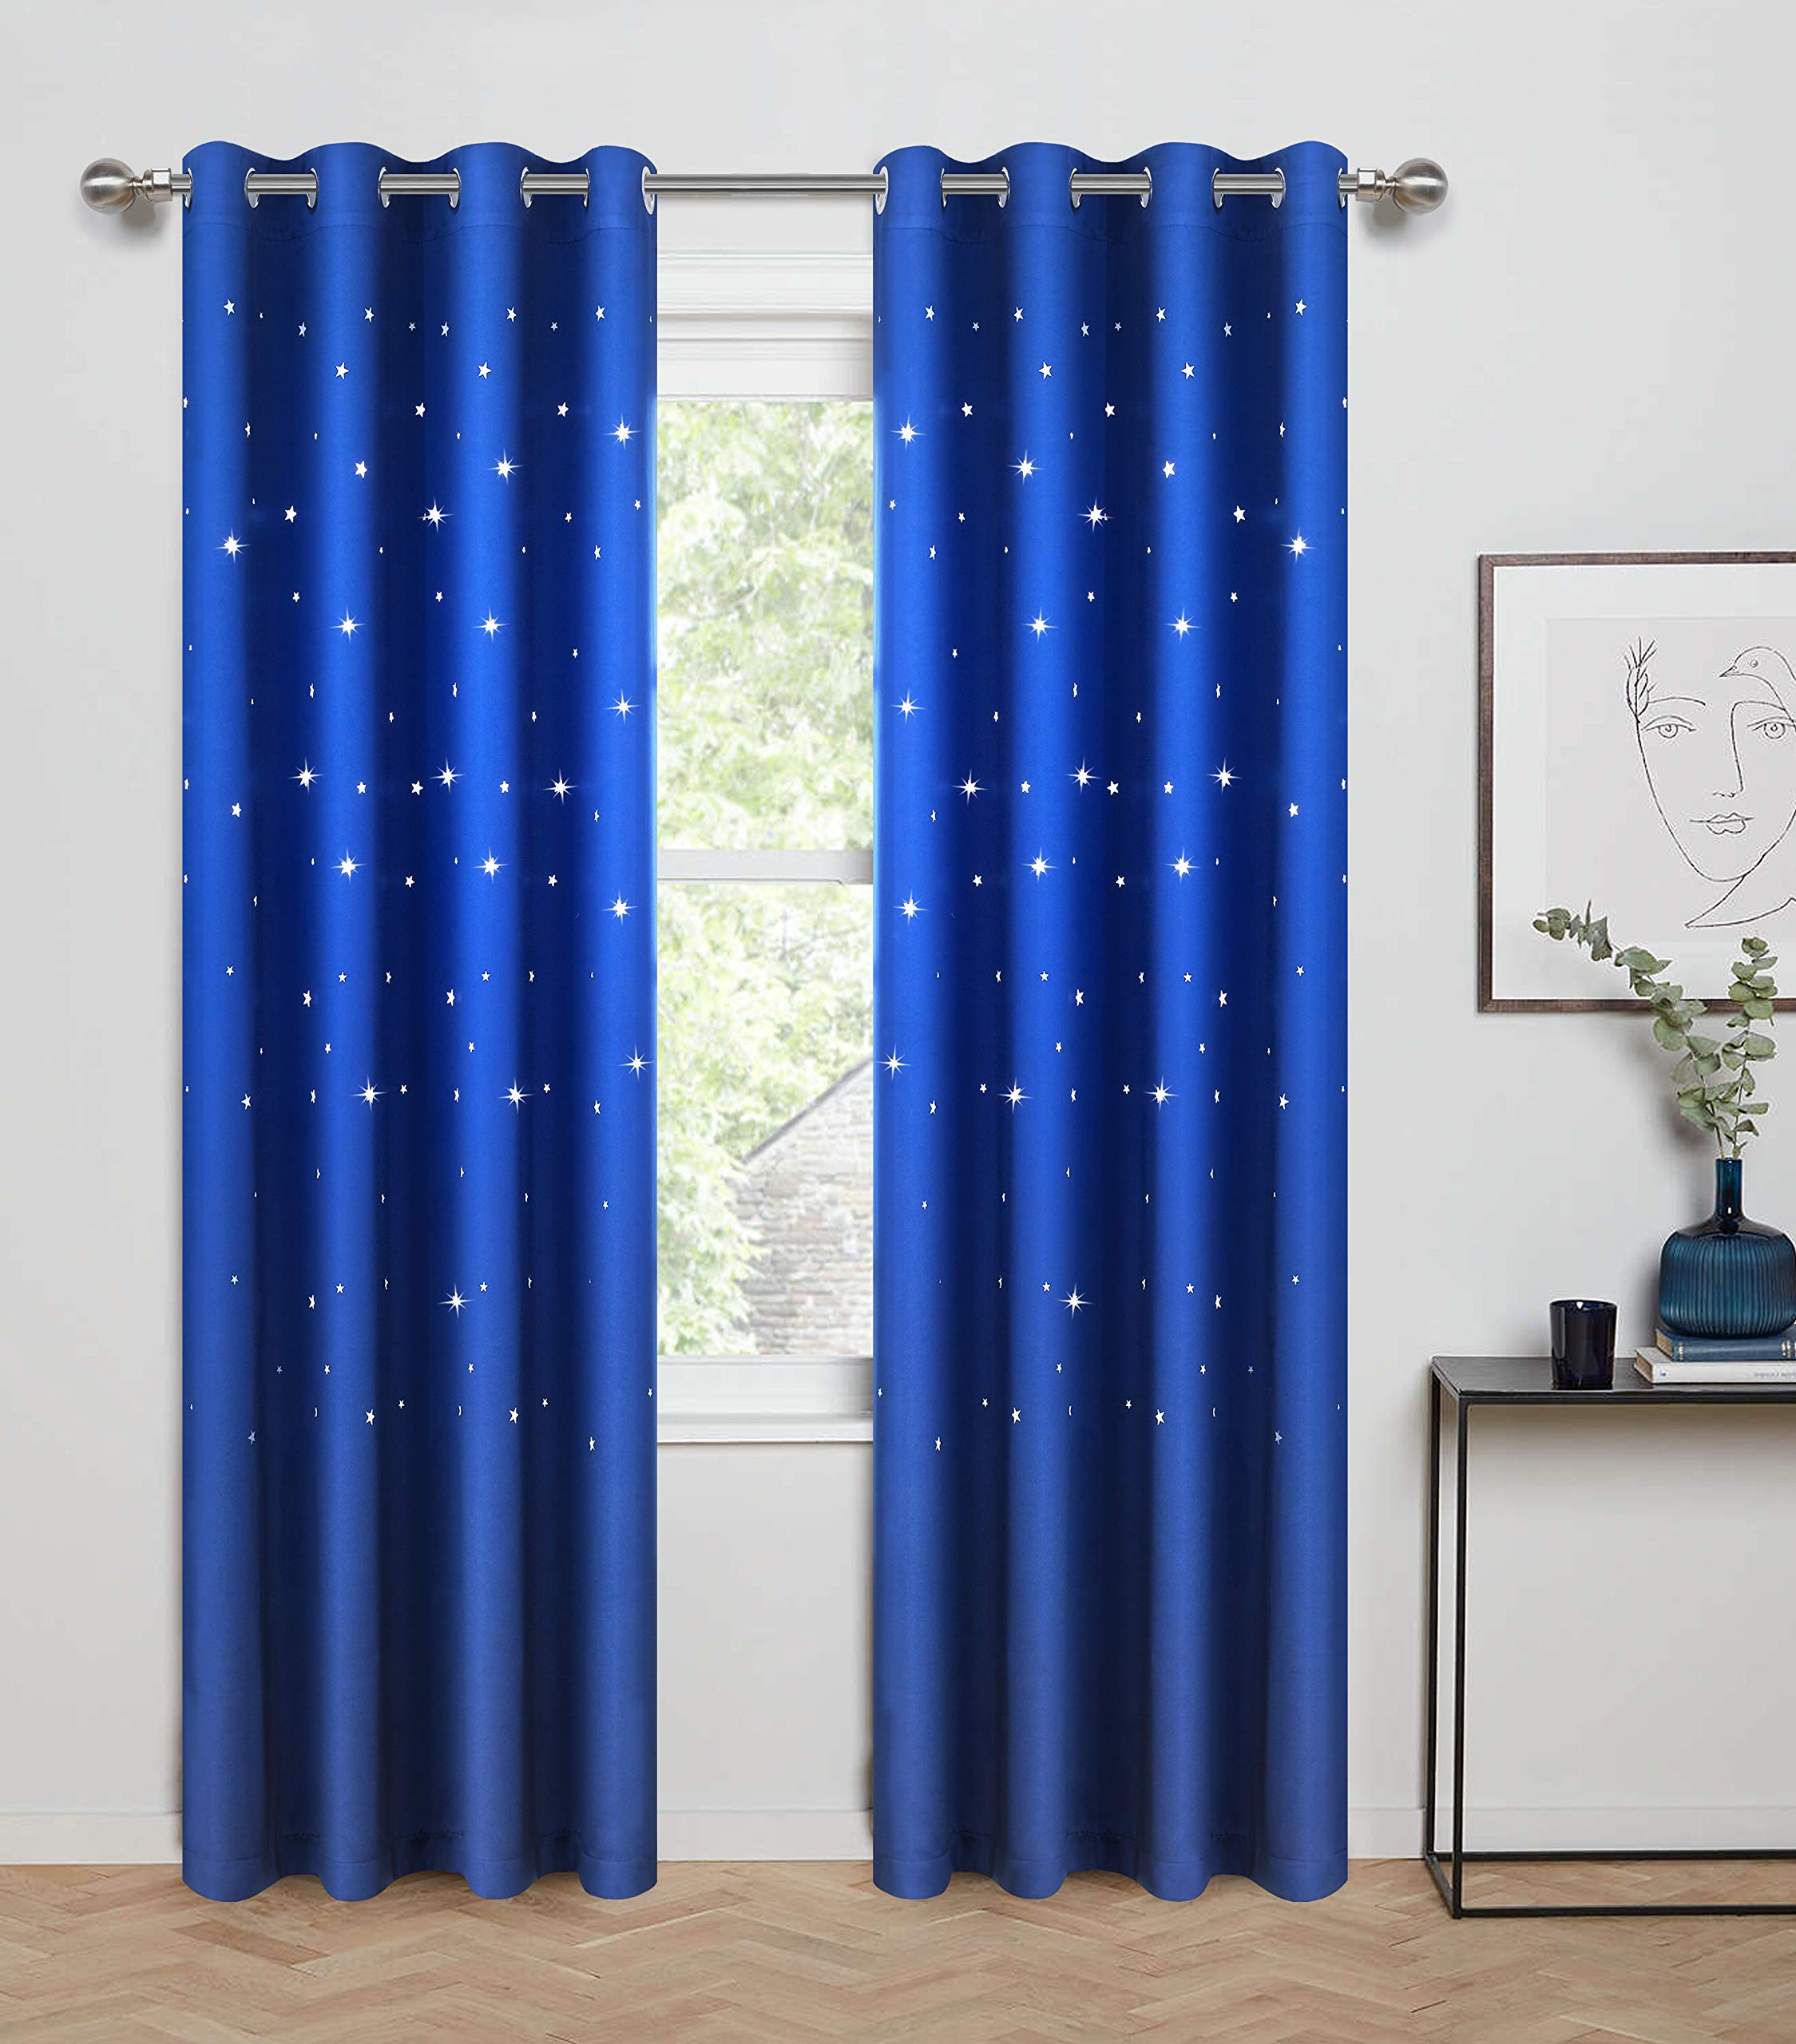 Anjee Blackout Curtains with Die Cut Stars for Bedroom-Starry Night Sleep-Enhancing Cosmic Themed Twinkle Drapes for Baby Nursery, Light Blocking Draperies (2-Panel W52 x L84 Inch, Royal Blue) by Anjee